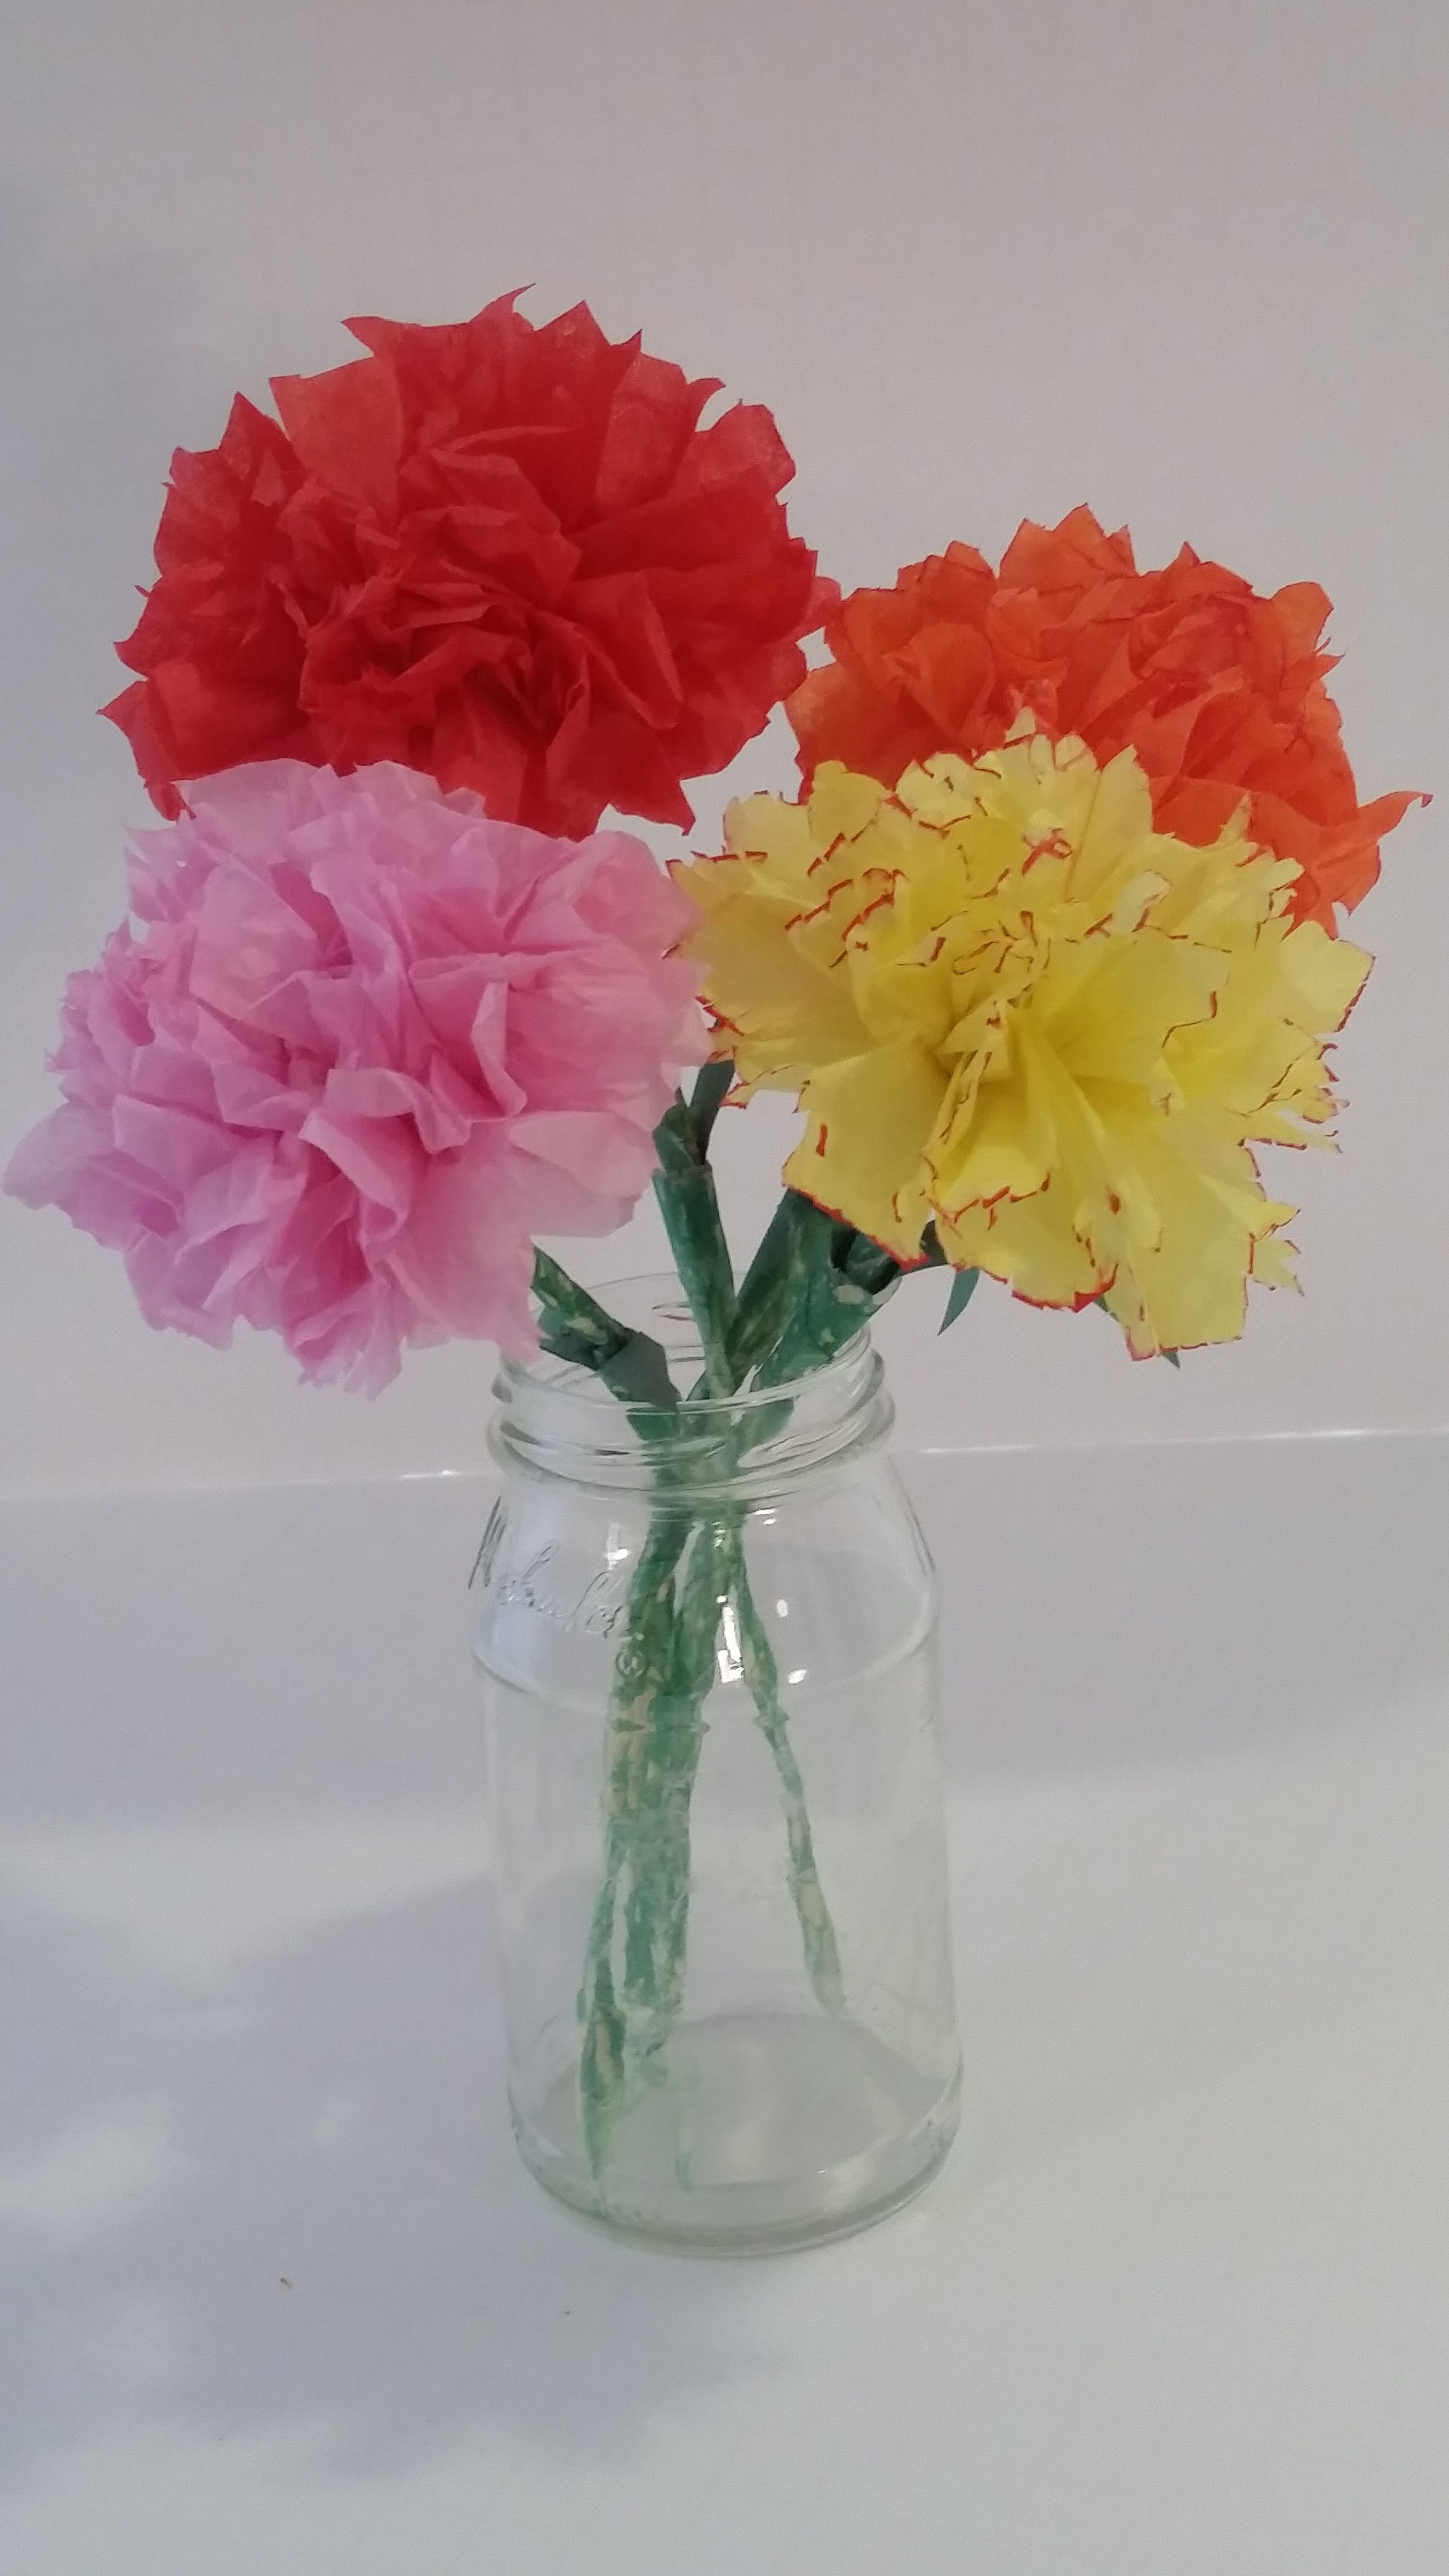 Diy Tissue Paper Carnation Flowers Watch The Easy Step By Step Tutorial Paper Flowers Tissue Paper Flowers Paper Flowers For Kids